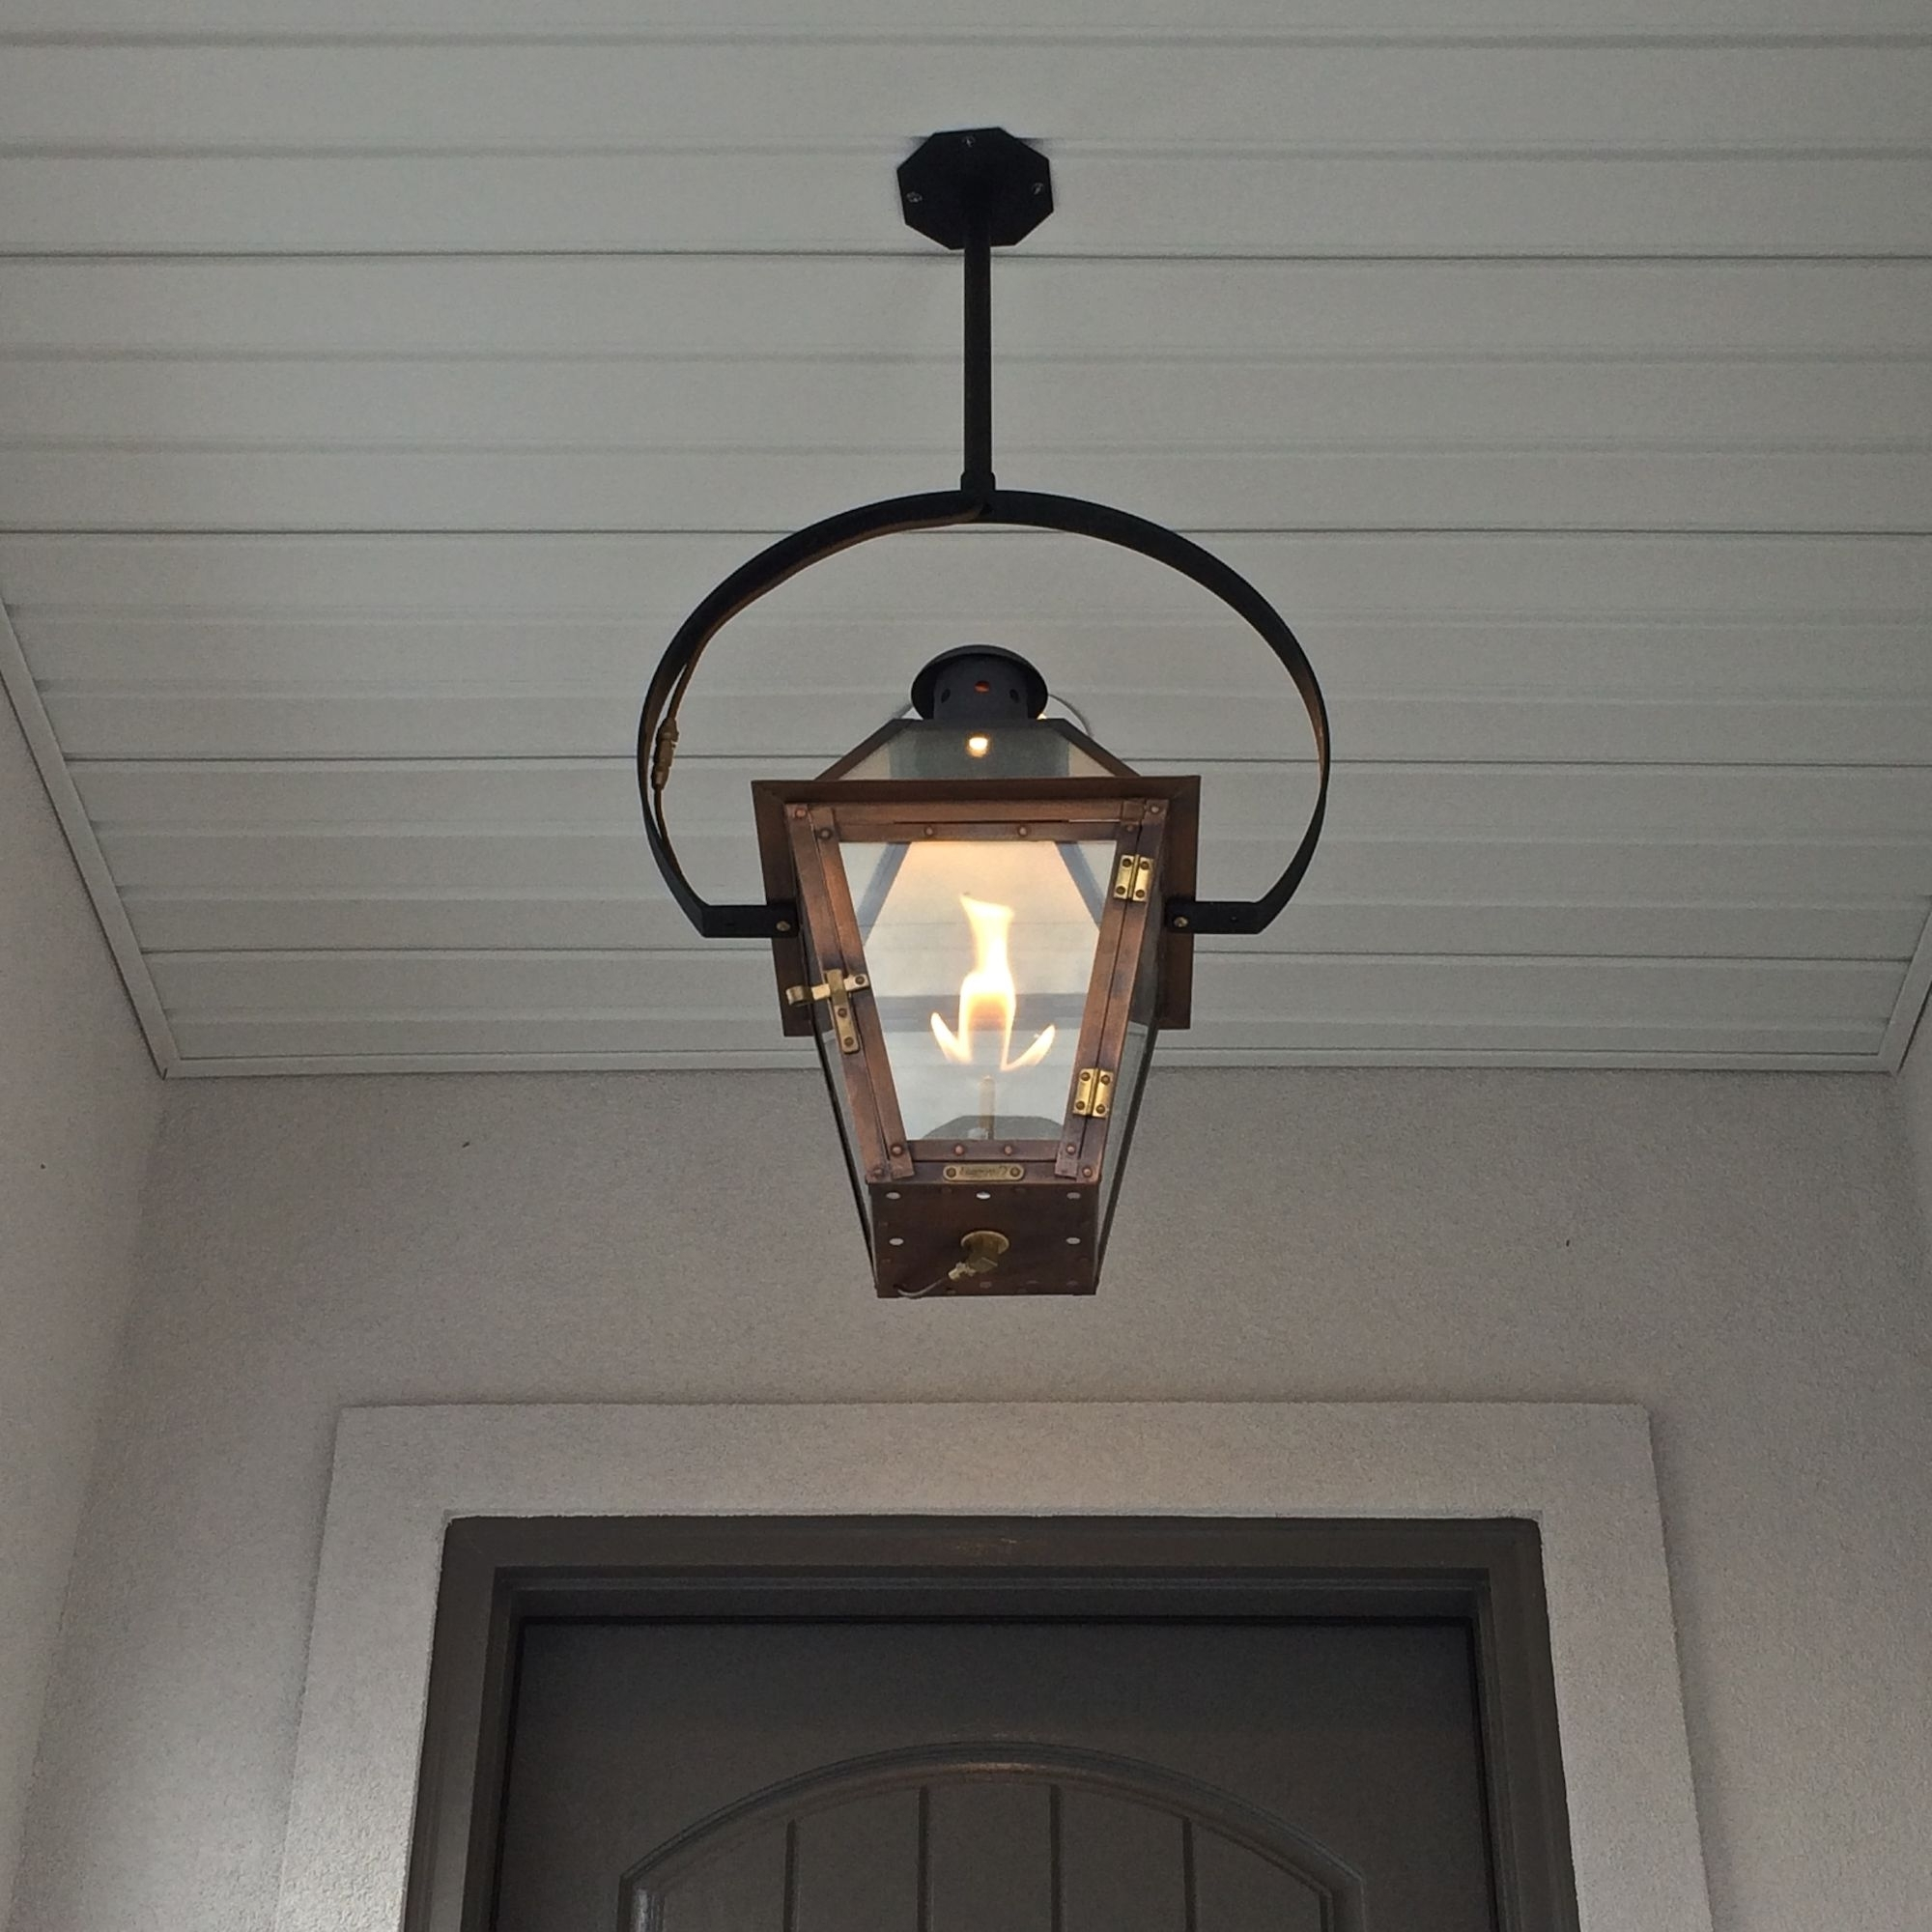 Exterior Entryway Large Hanging Gas Lantern Estess Contractors Within Most Up To Date Large Outdoor Electric Lanterns (Gallery 13 of 20)